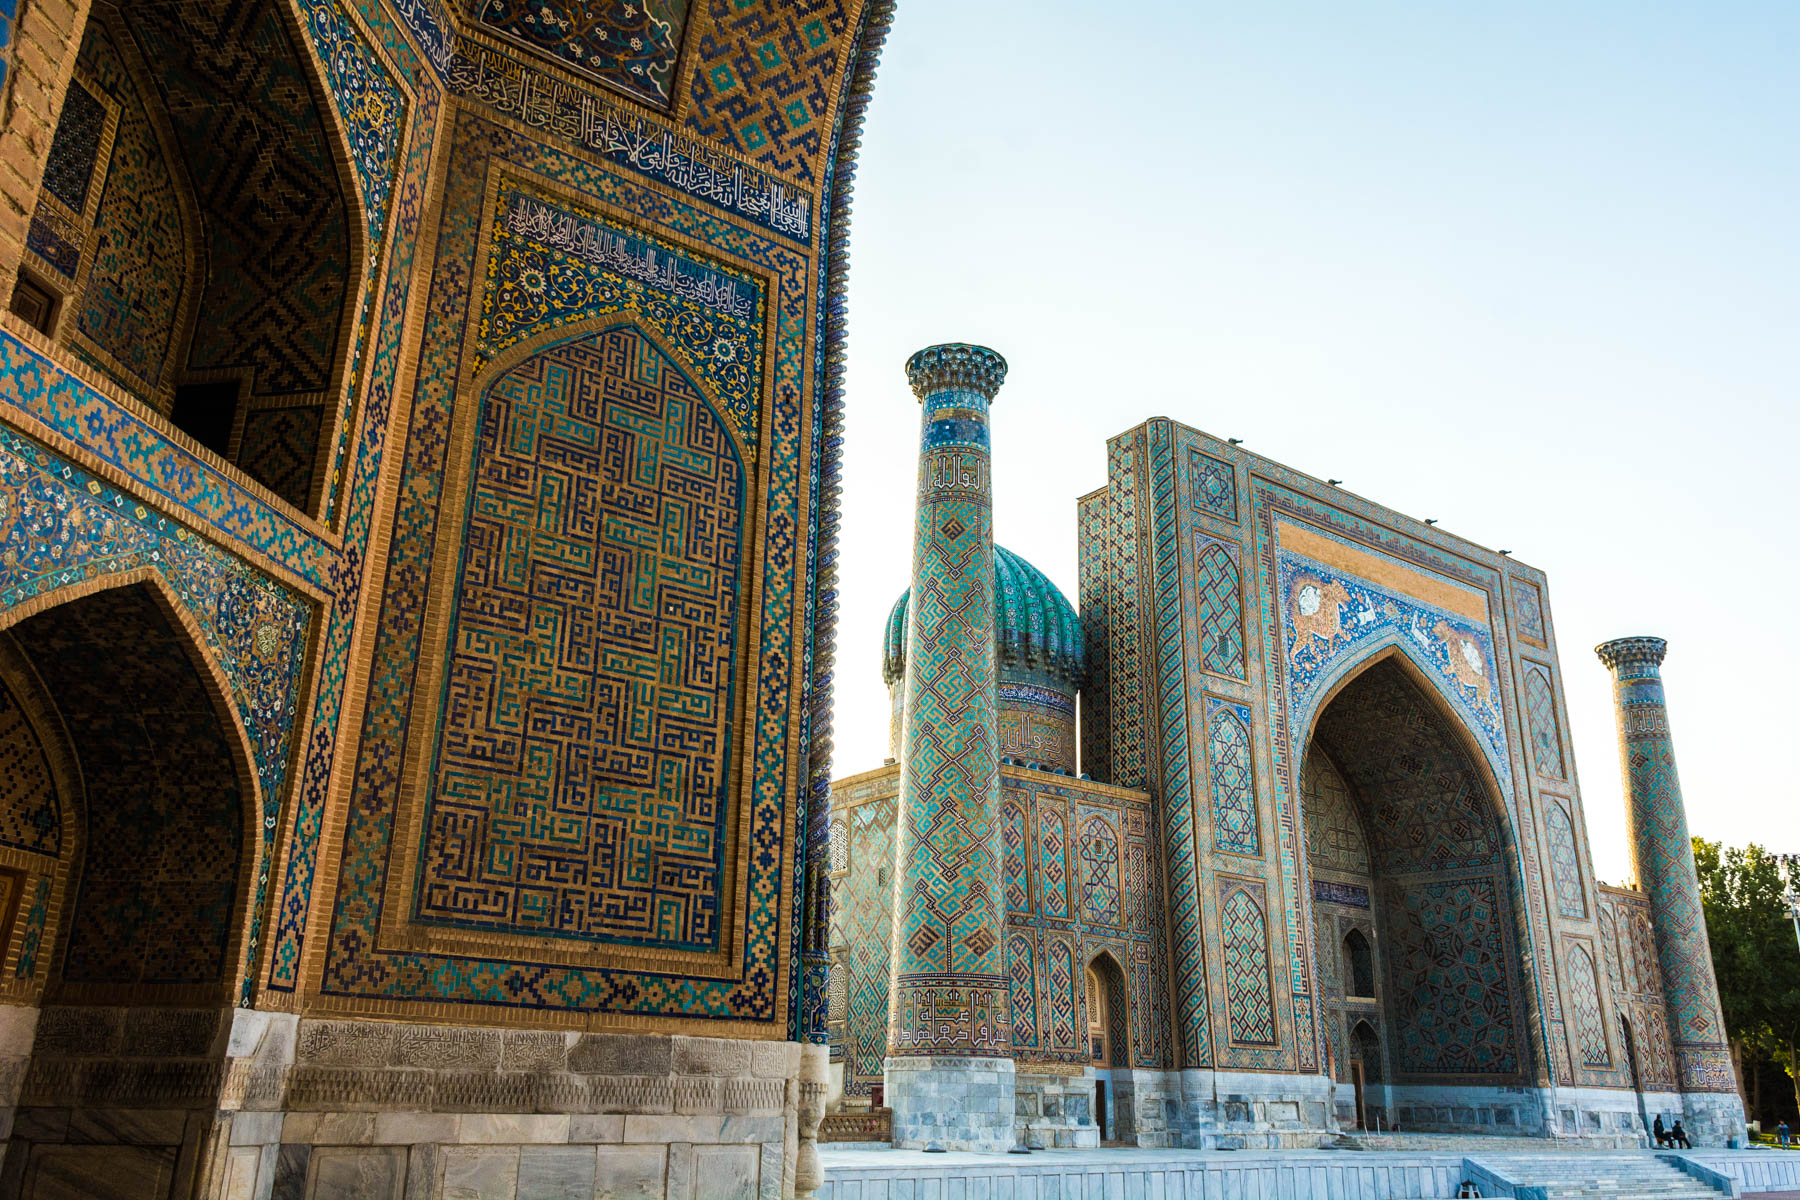 Two week Uzbekistan itinerary - The Registan in Samarkand, Uzbekistan at sunrise - Lost With Purpose